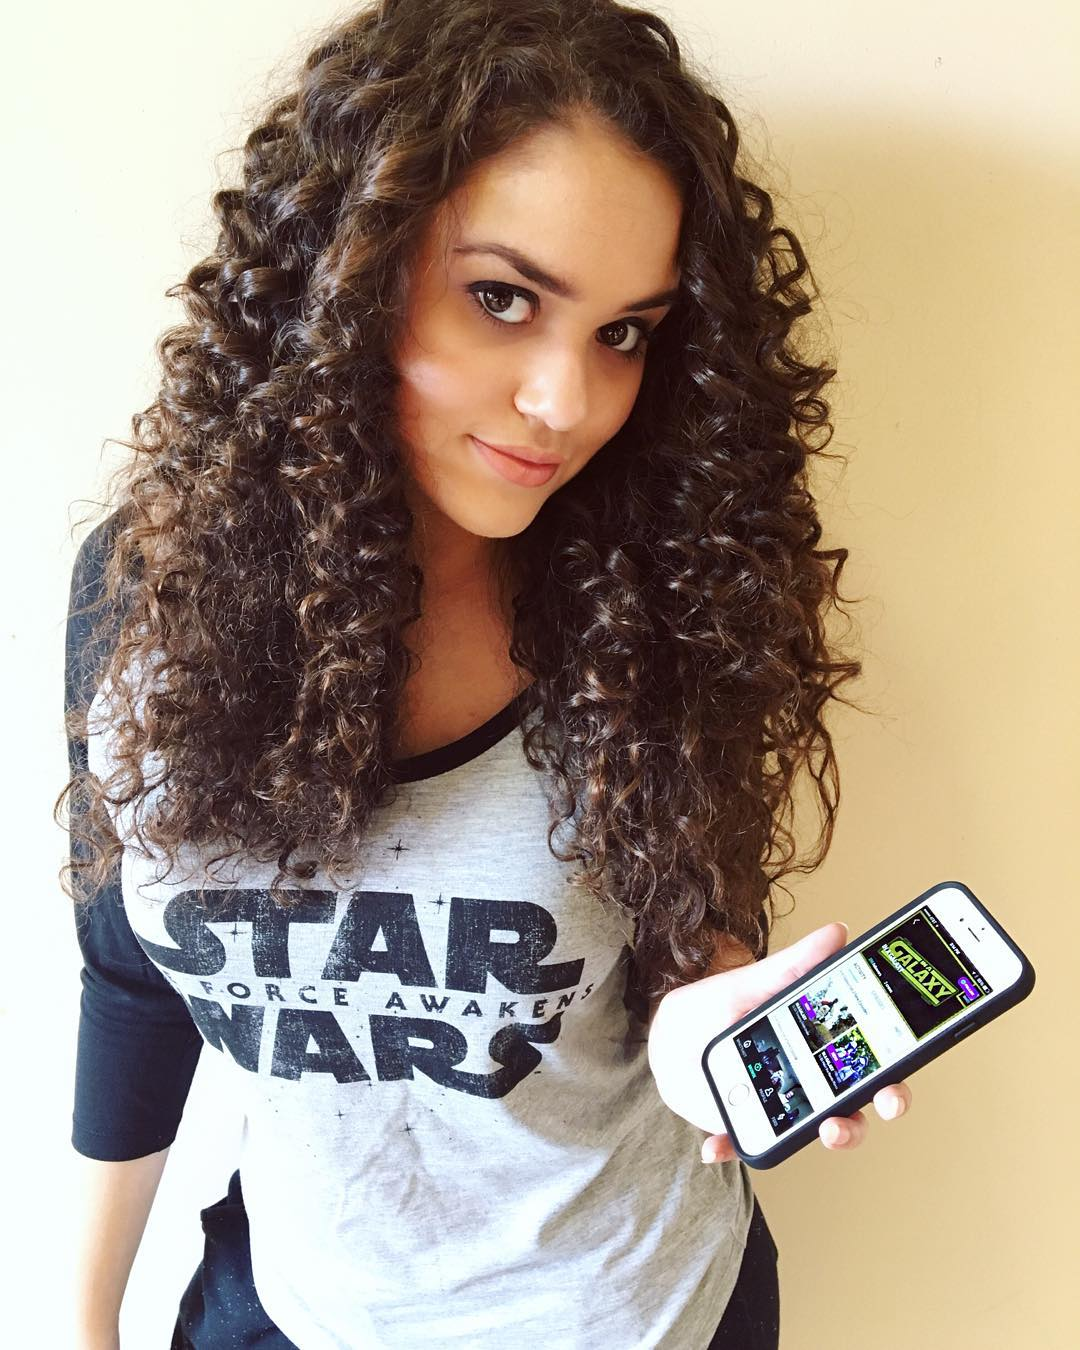 Leaked Madison Pettis nudes (16 photo), Topless, Hot, Twitter, butt 2006